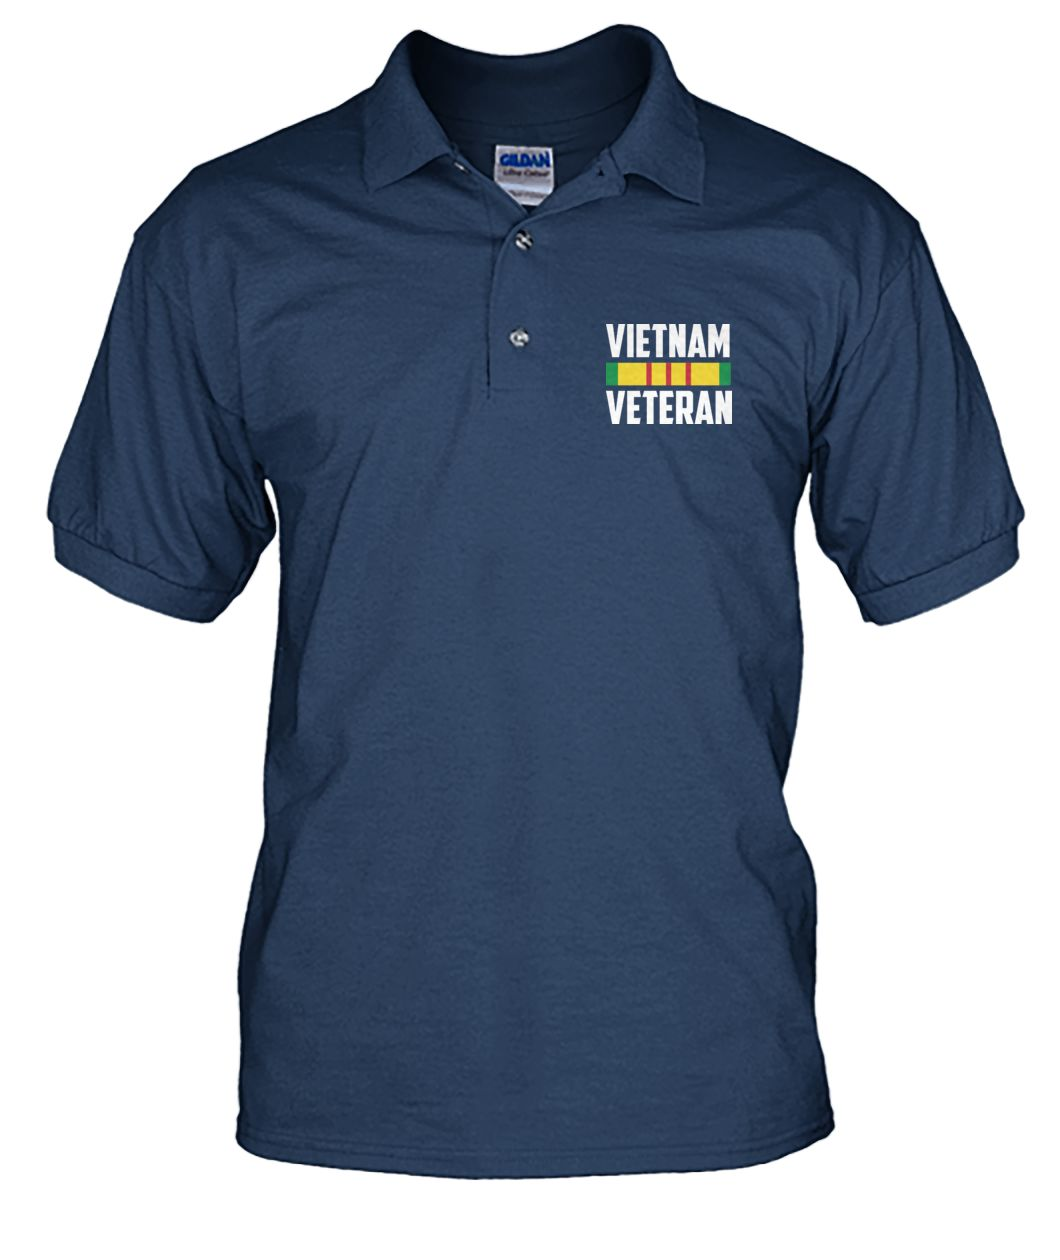 Never underestimate an old man who flew in a Huey? Vietnam veteran men's polo